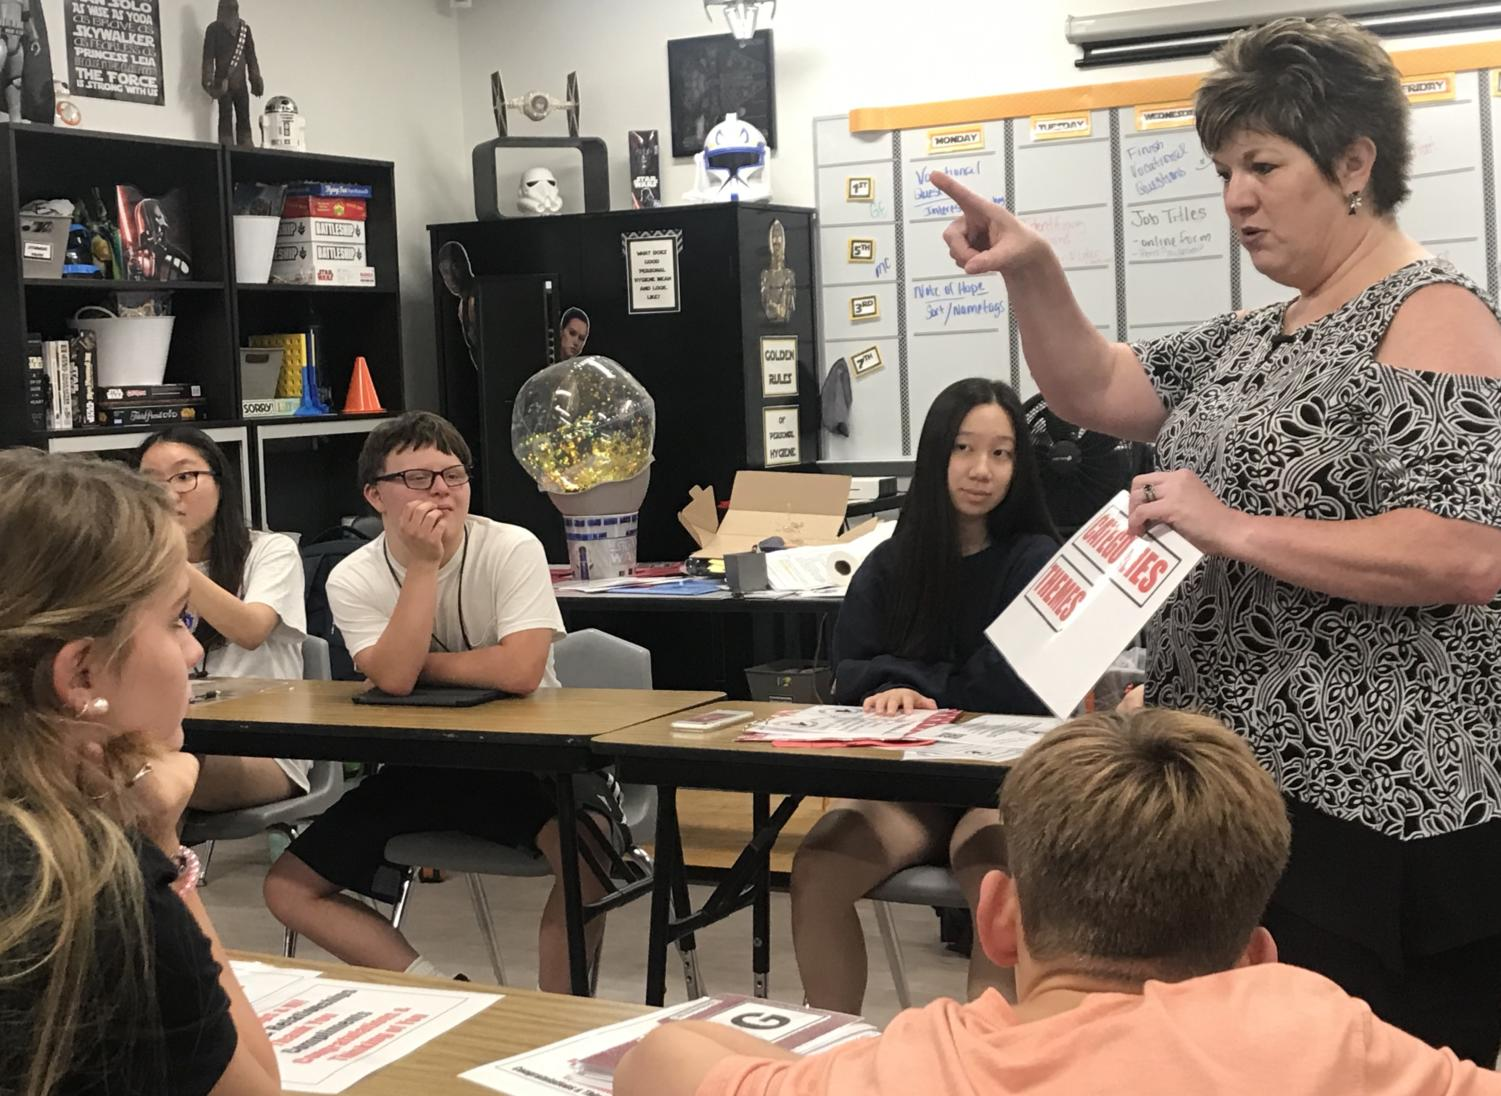 Coppell High School special education teacher Melissa Murray gives directions to her seventh period Applied Vocational Experience class about the next preparation phase of their business and year-long class project called A Note of Hope. This business provides a service where CISD students can send anyone kind, uniquely designed notes for free.